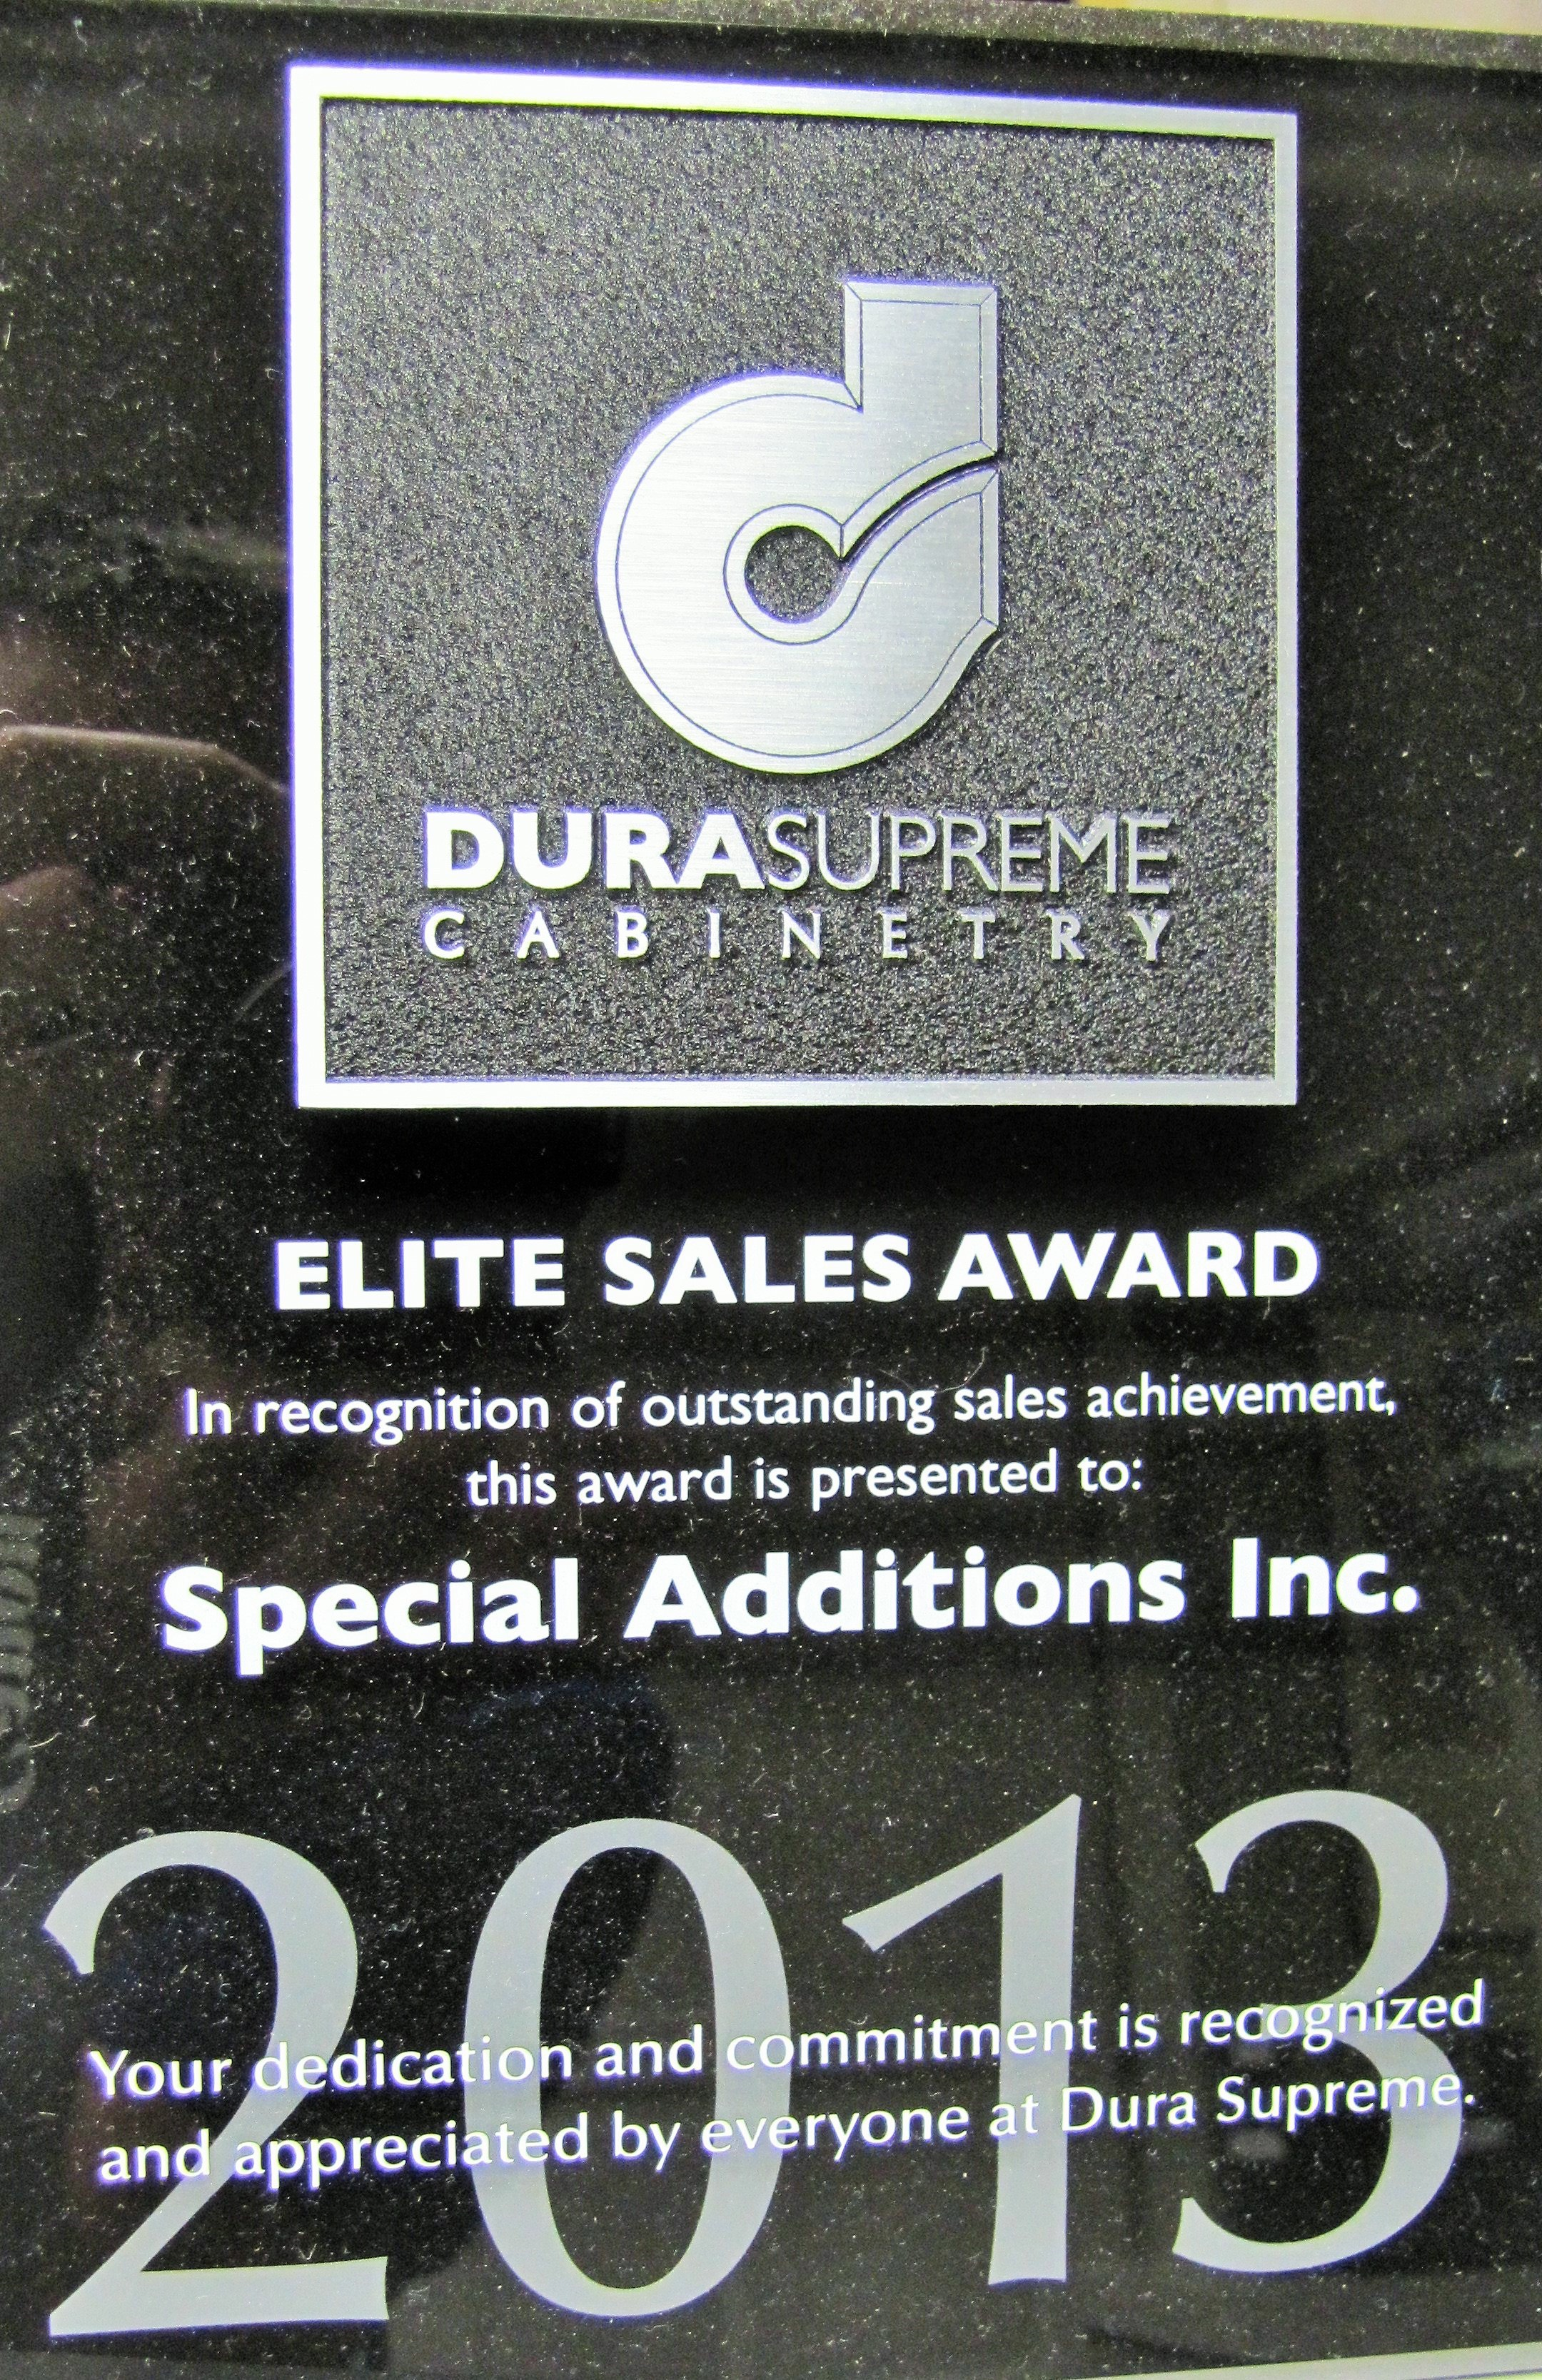 Special Additions Elite Sales Award